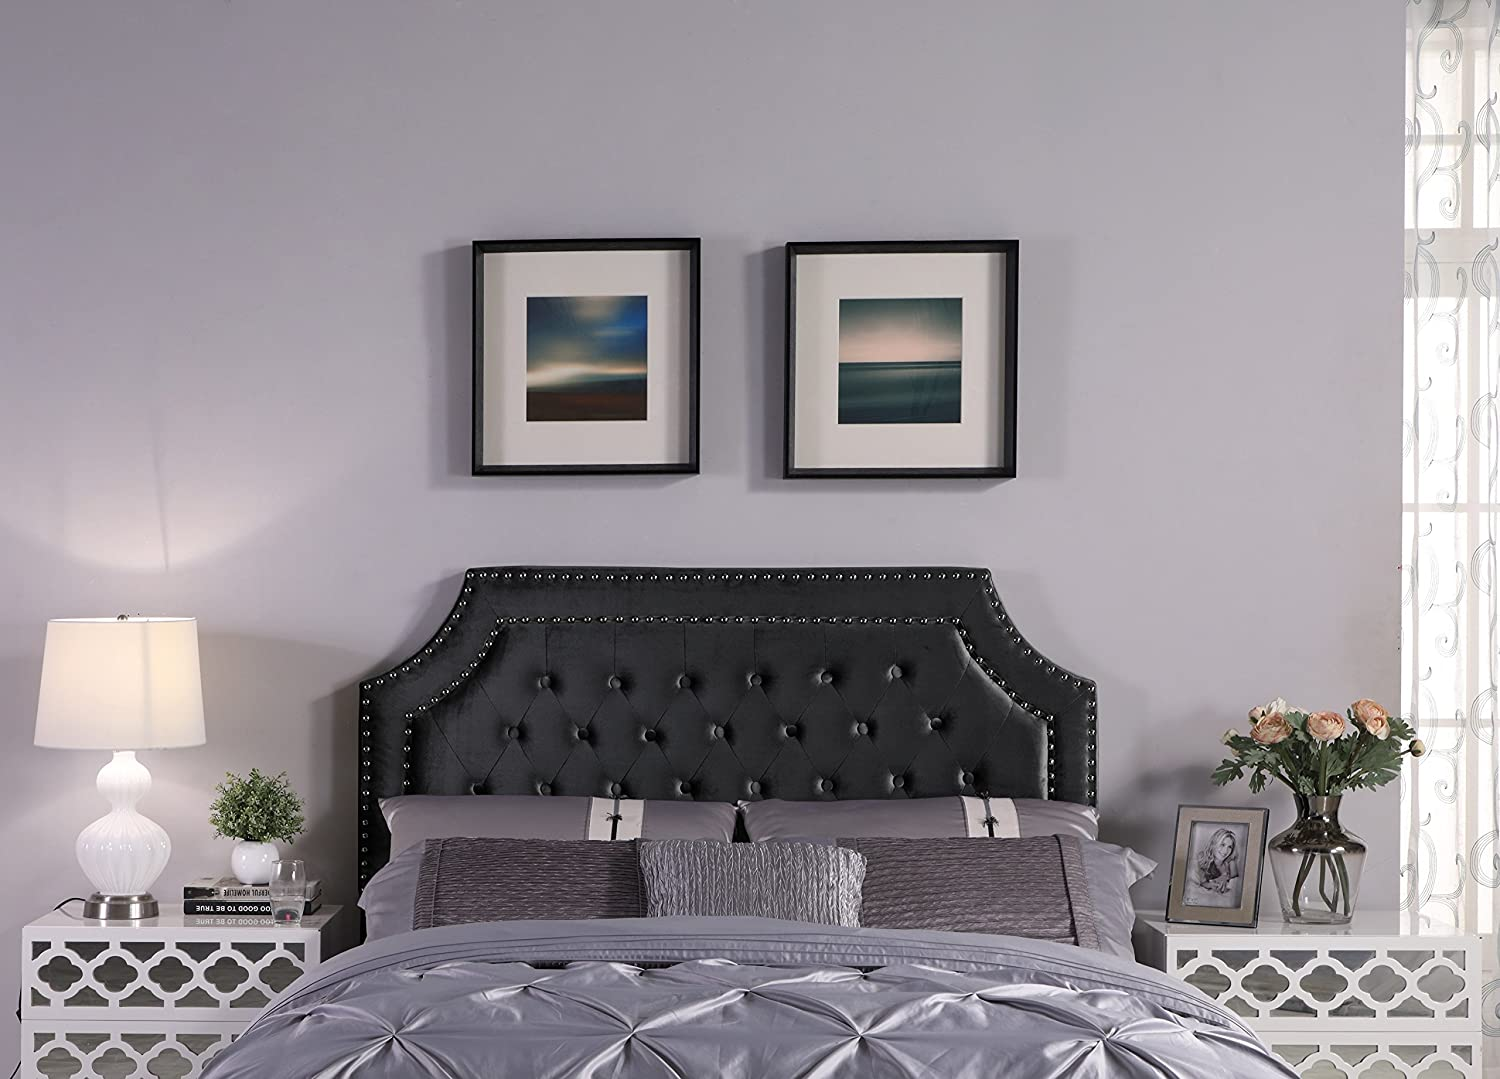 Iconic Home Chava Headboard Velvet Upholstered Button Tufted Double Row Silver Nailhead Trim Modern Transitional, Twin, Black